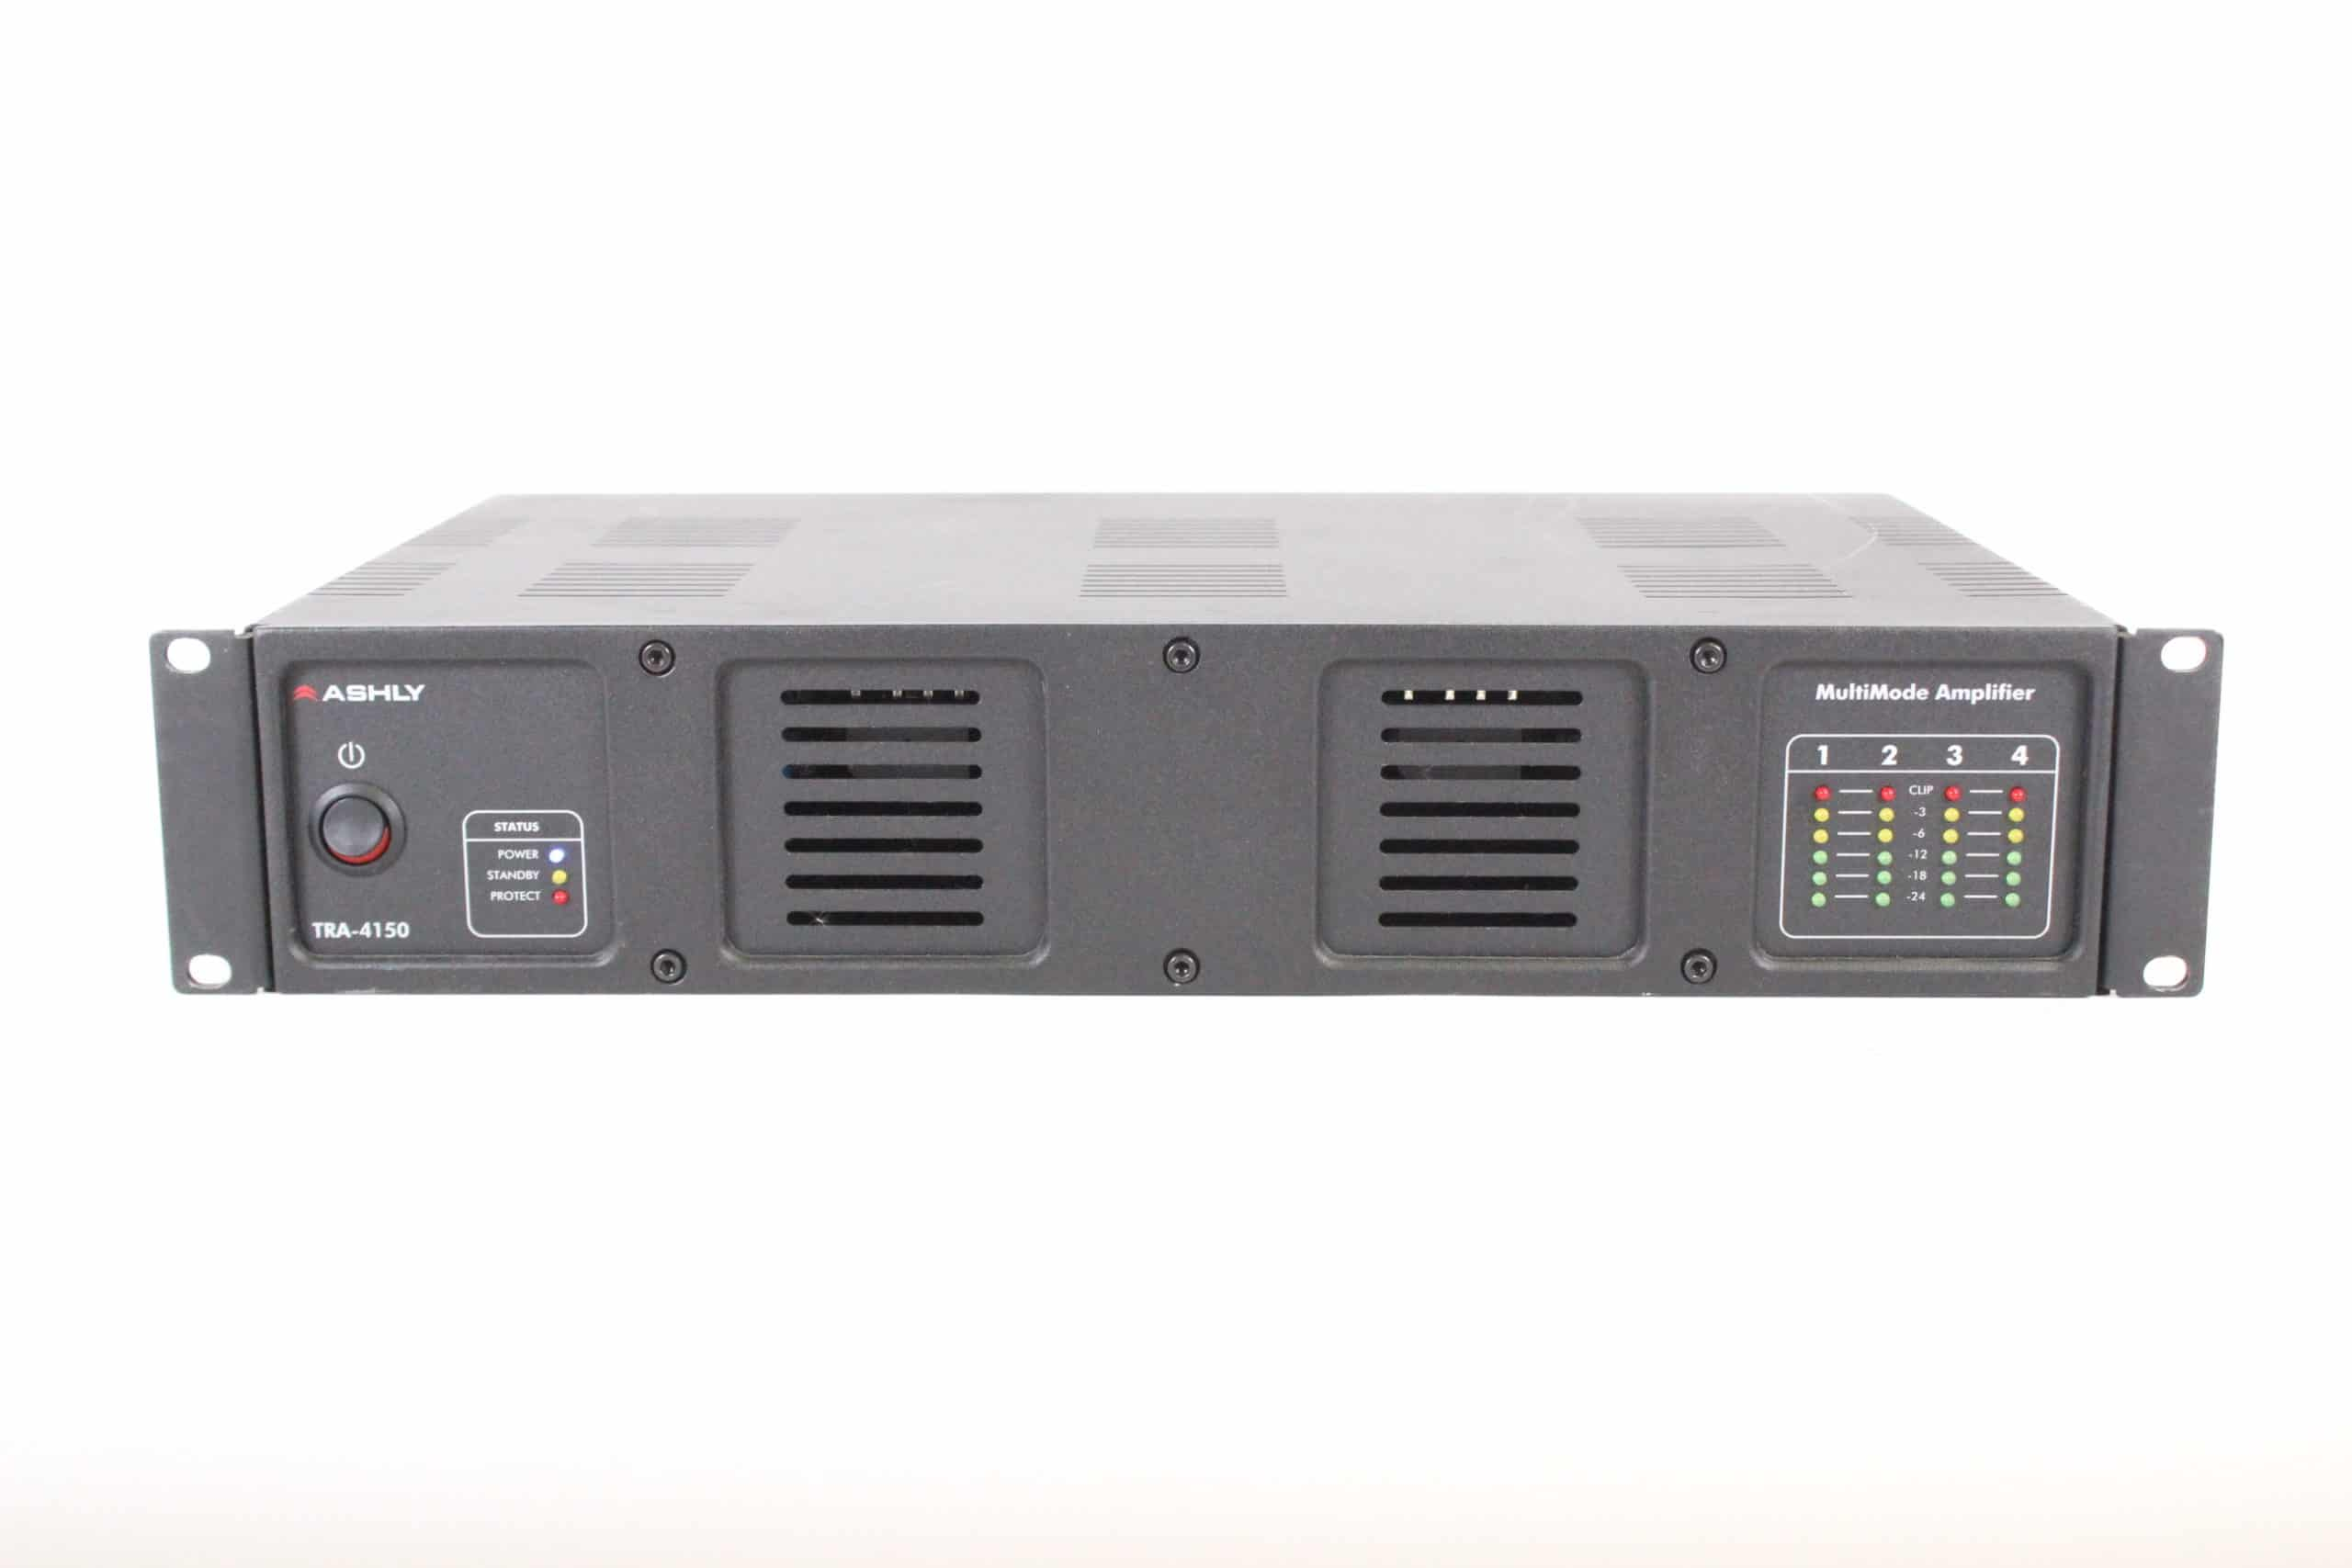 ashly-tra-4150-rackmount-4-channel-power-amplifier-with-transformer-missing-knob MAIN